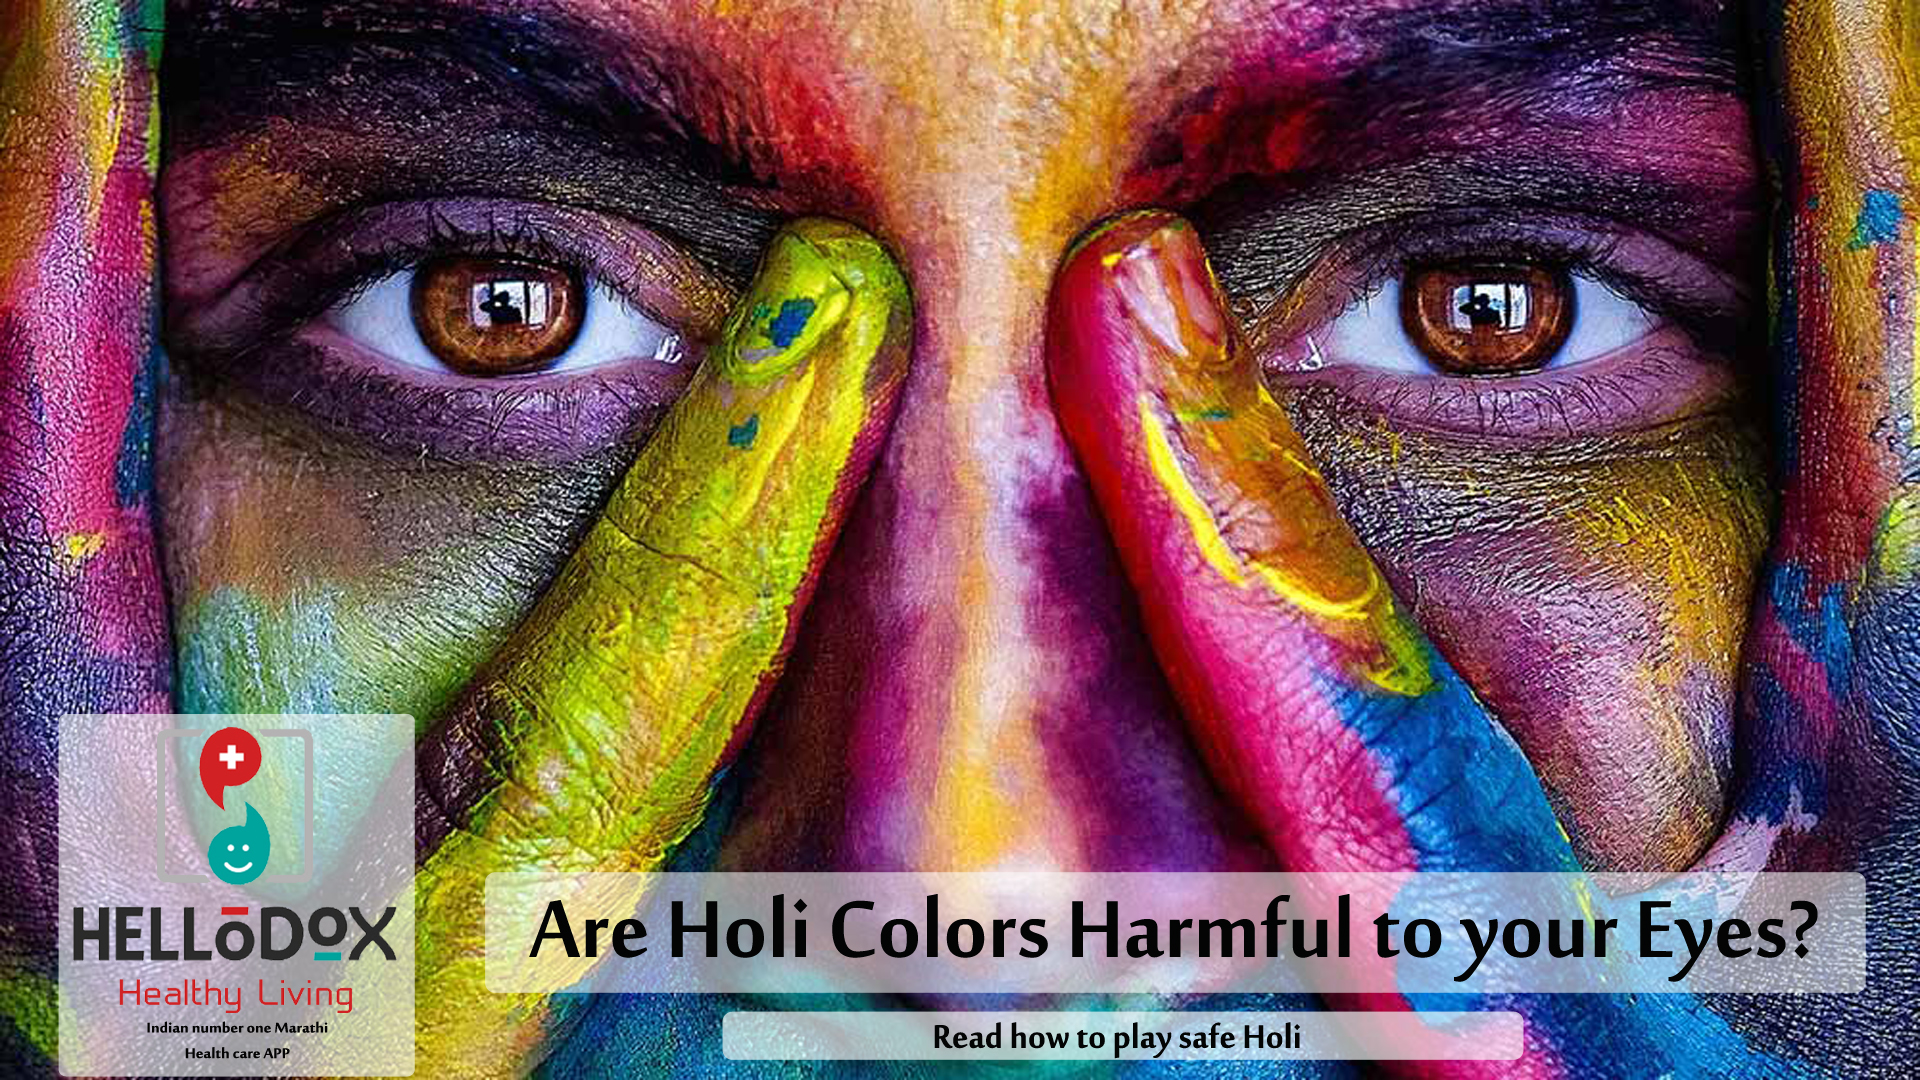 Are Holi colors harmful to your eyes?